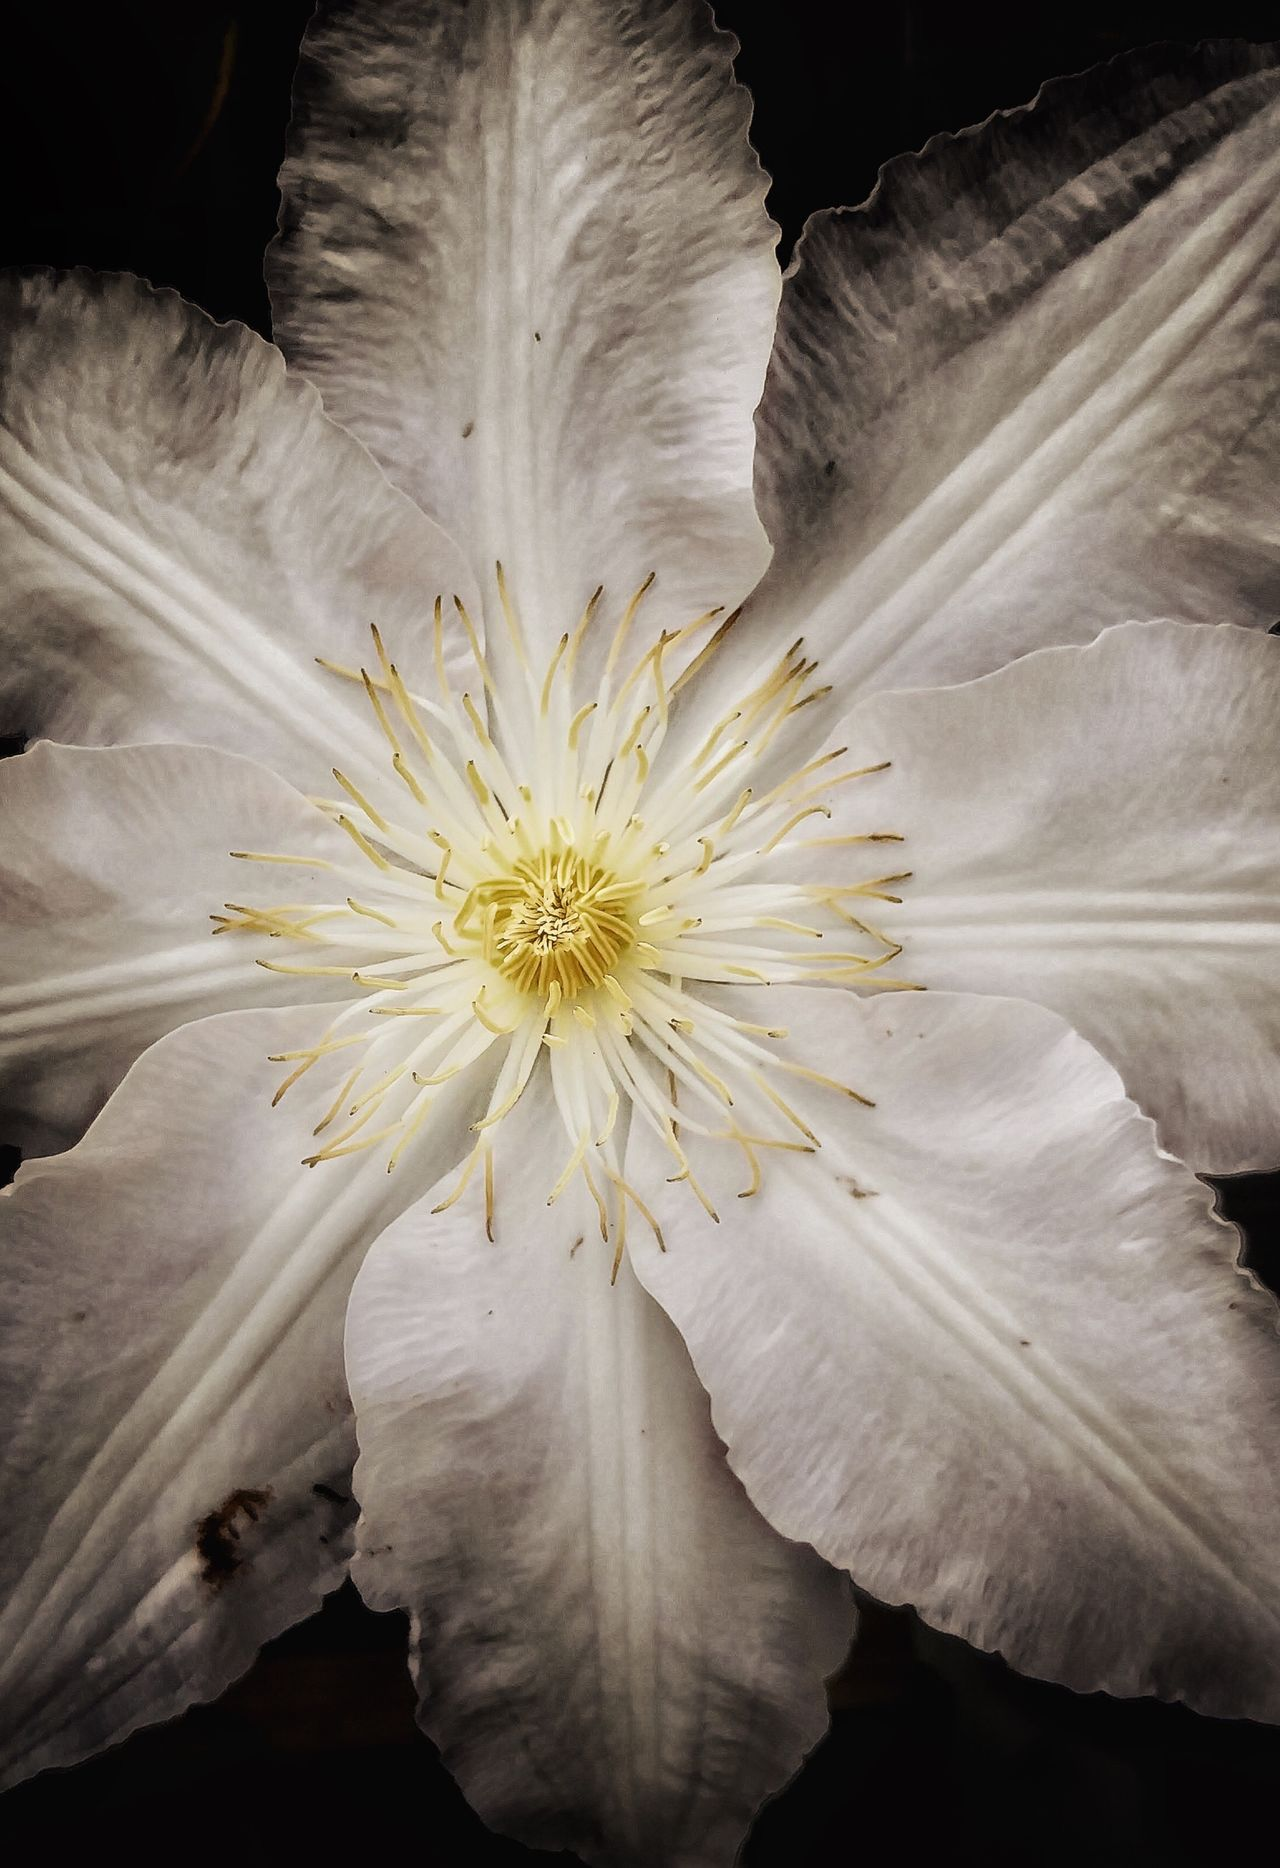 Clematis Clematis Vine Clematis Flower Macro Photography Flower Head Flower Close-up White Color Fragility Beauty In Nature No People Freshness Freshness Nature Purity Outdoors Shop Flower